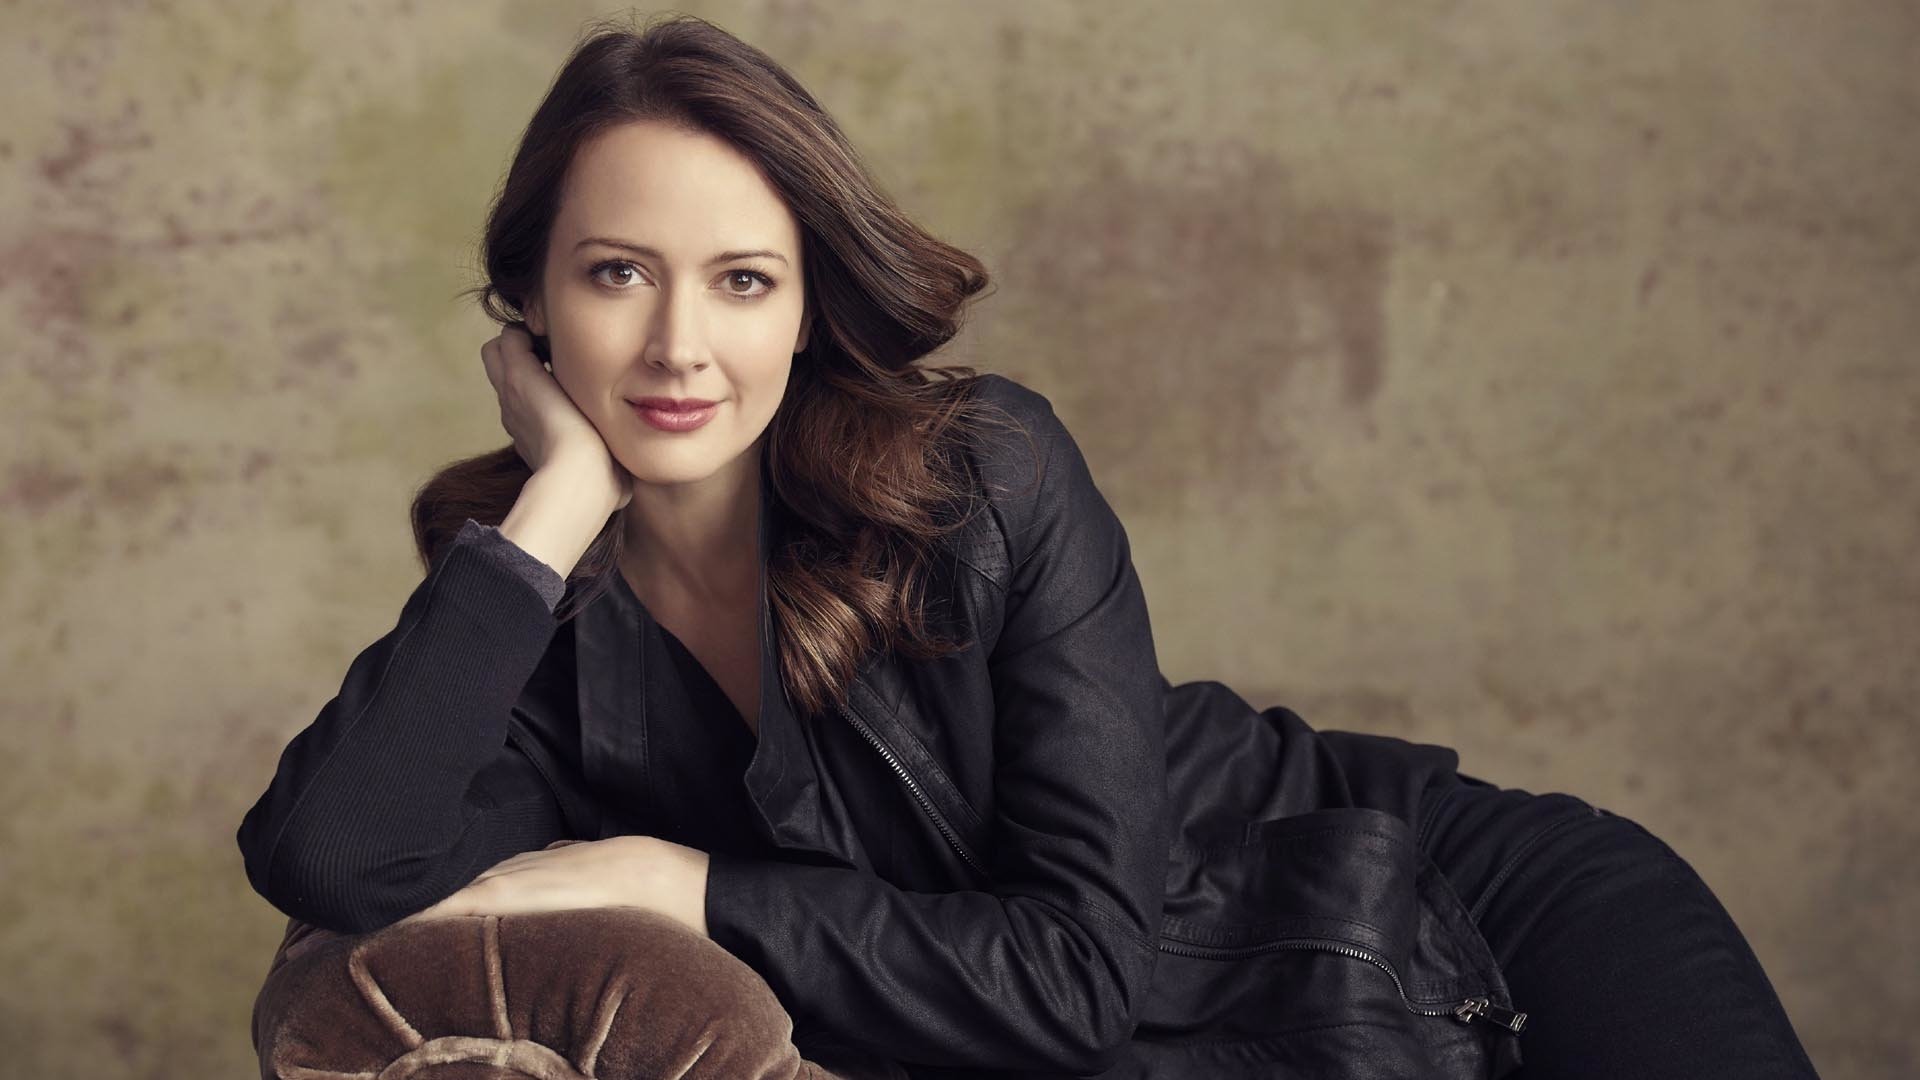 25 amy acker hd wallpapers | background images - wallpaper abyss